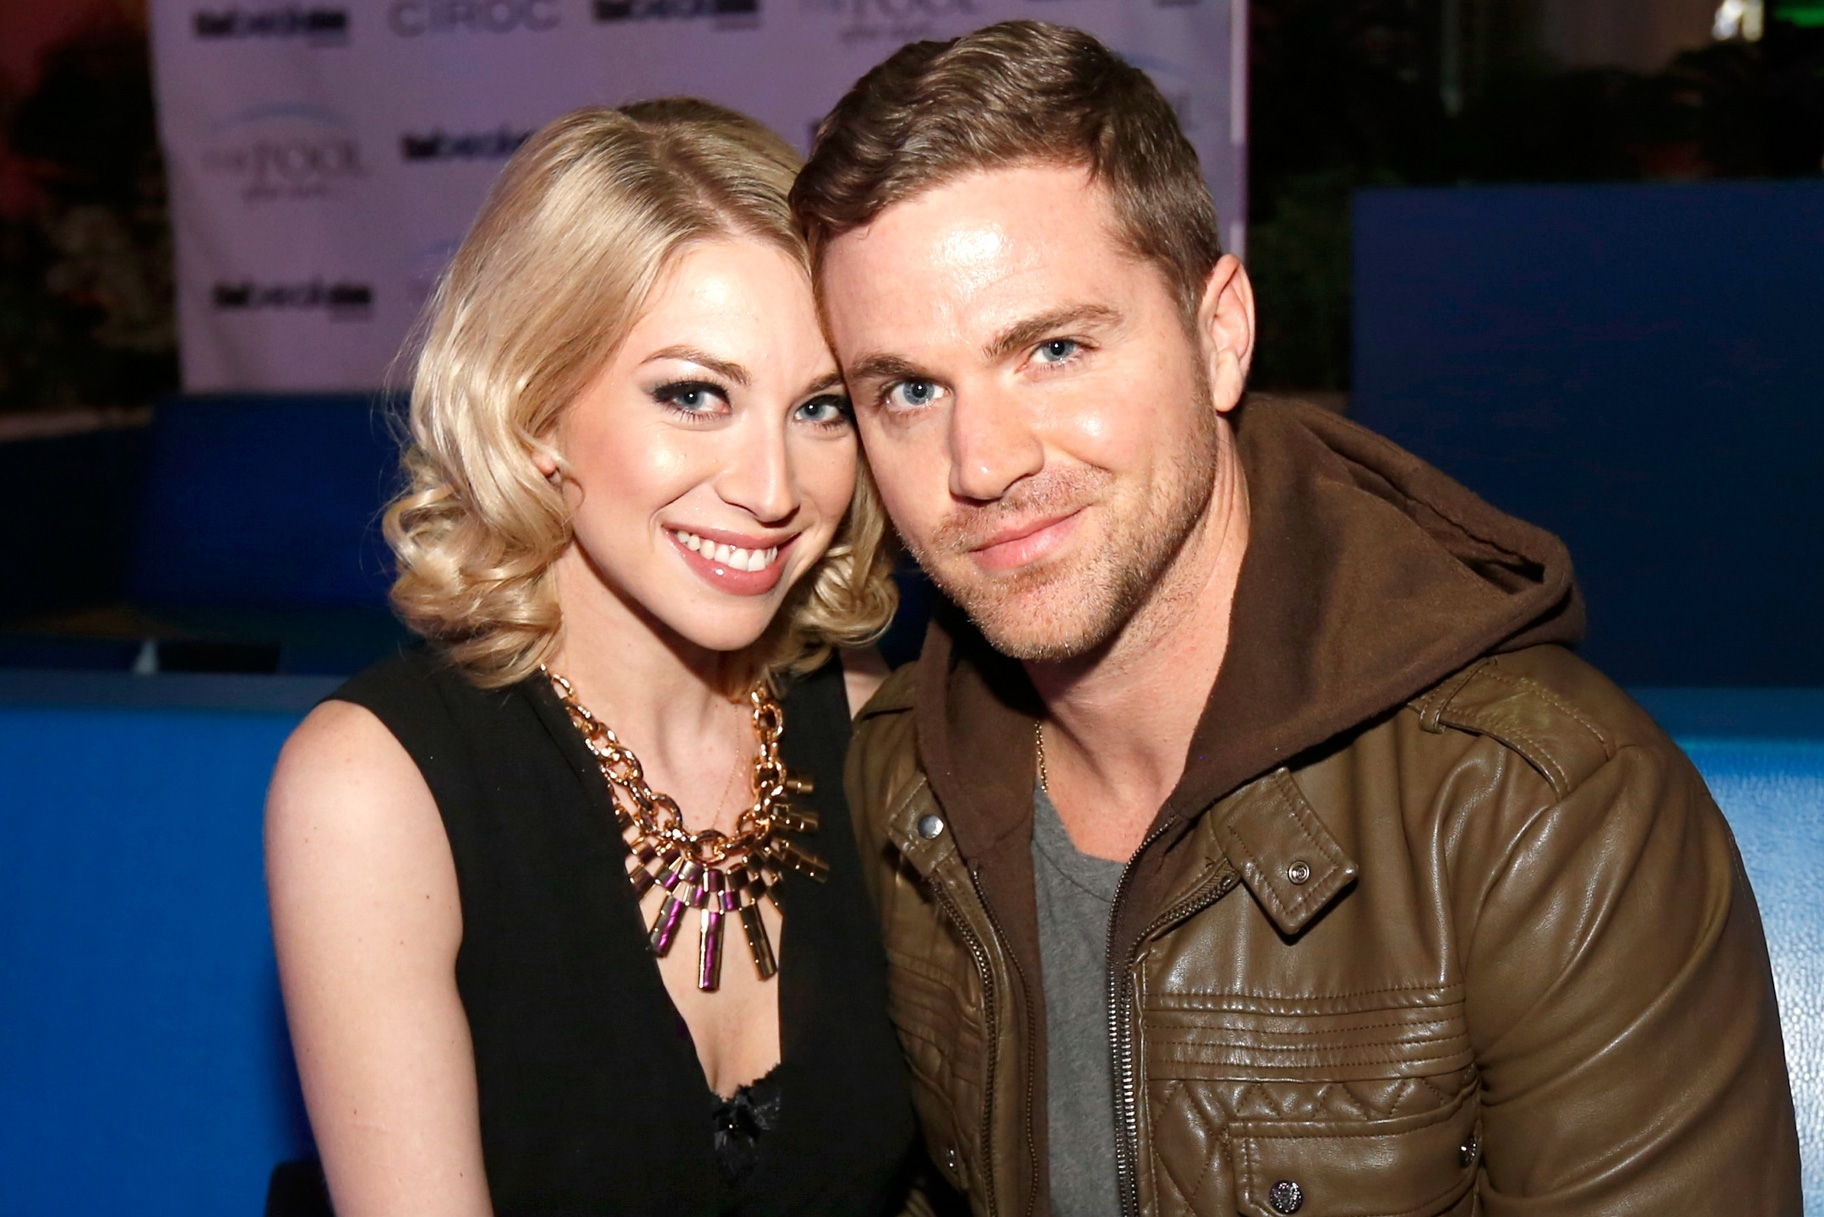 Stassi Schroeder and Patrick Meagher, a picture-perfect couple. They both look happy together.